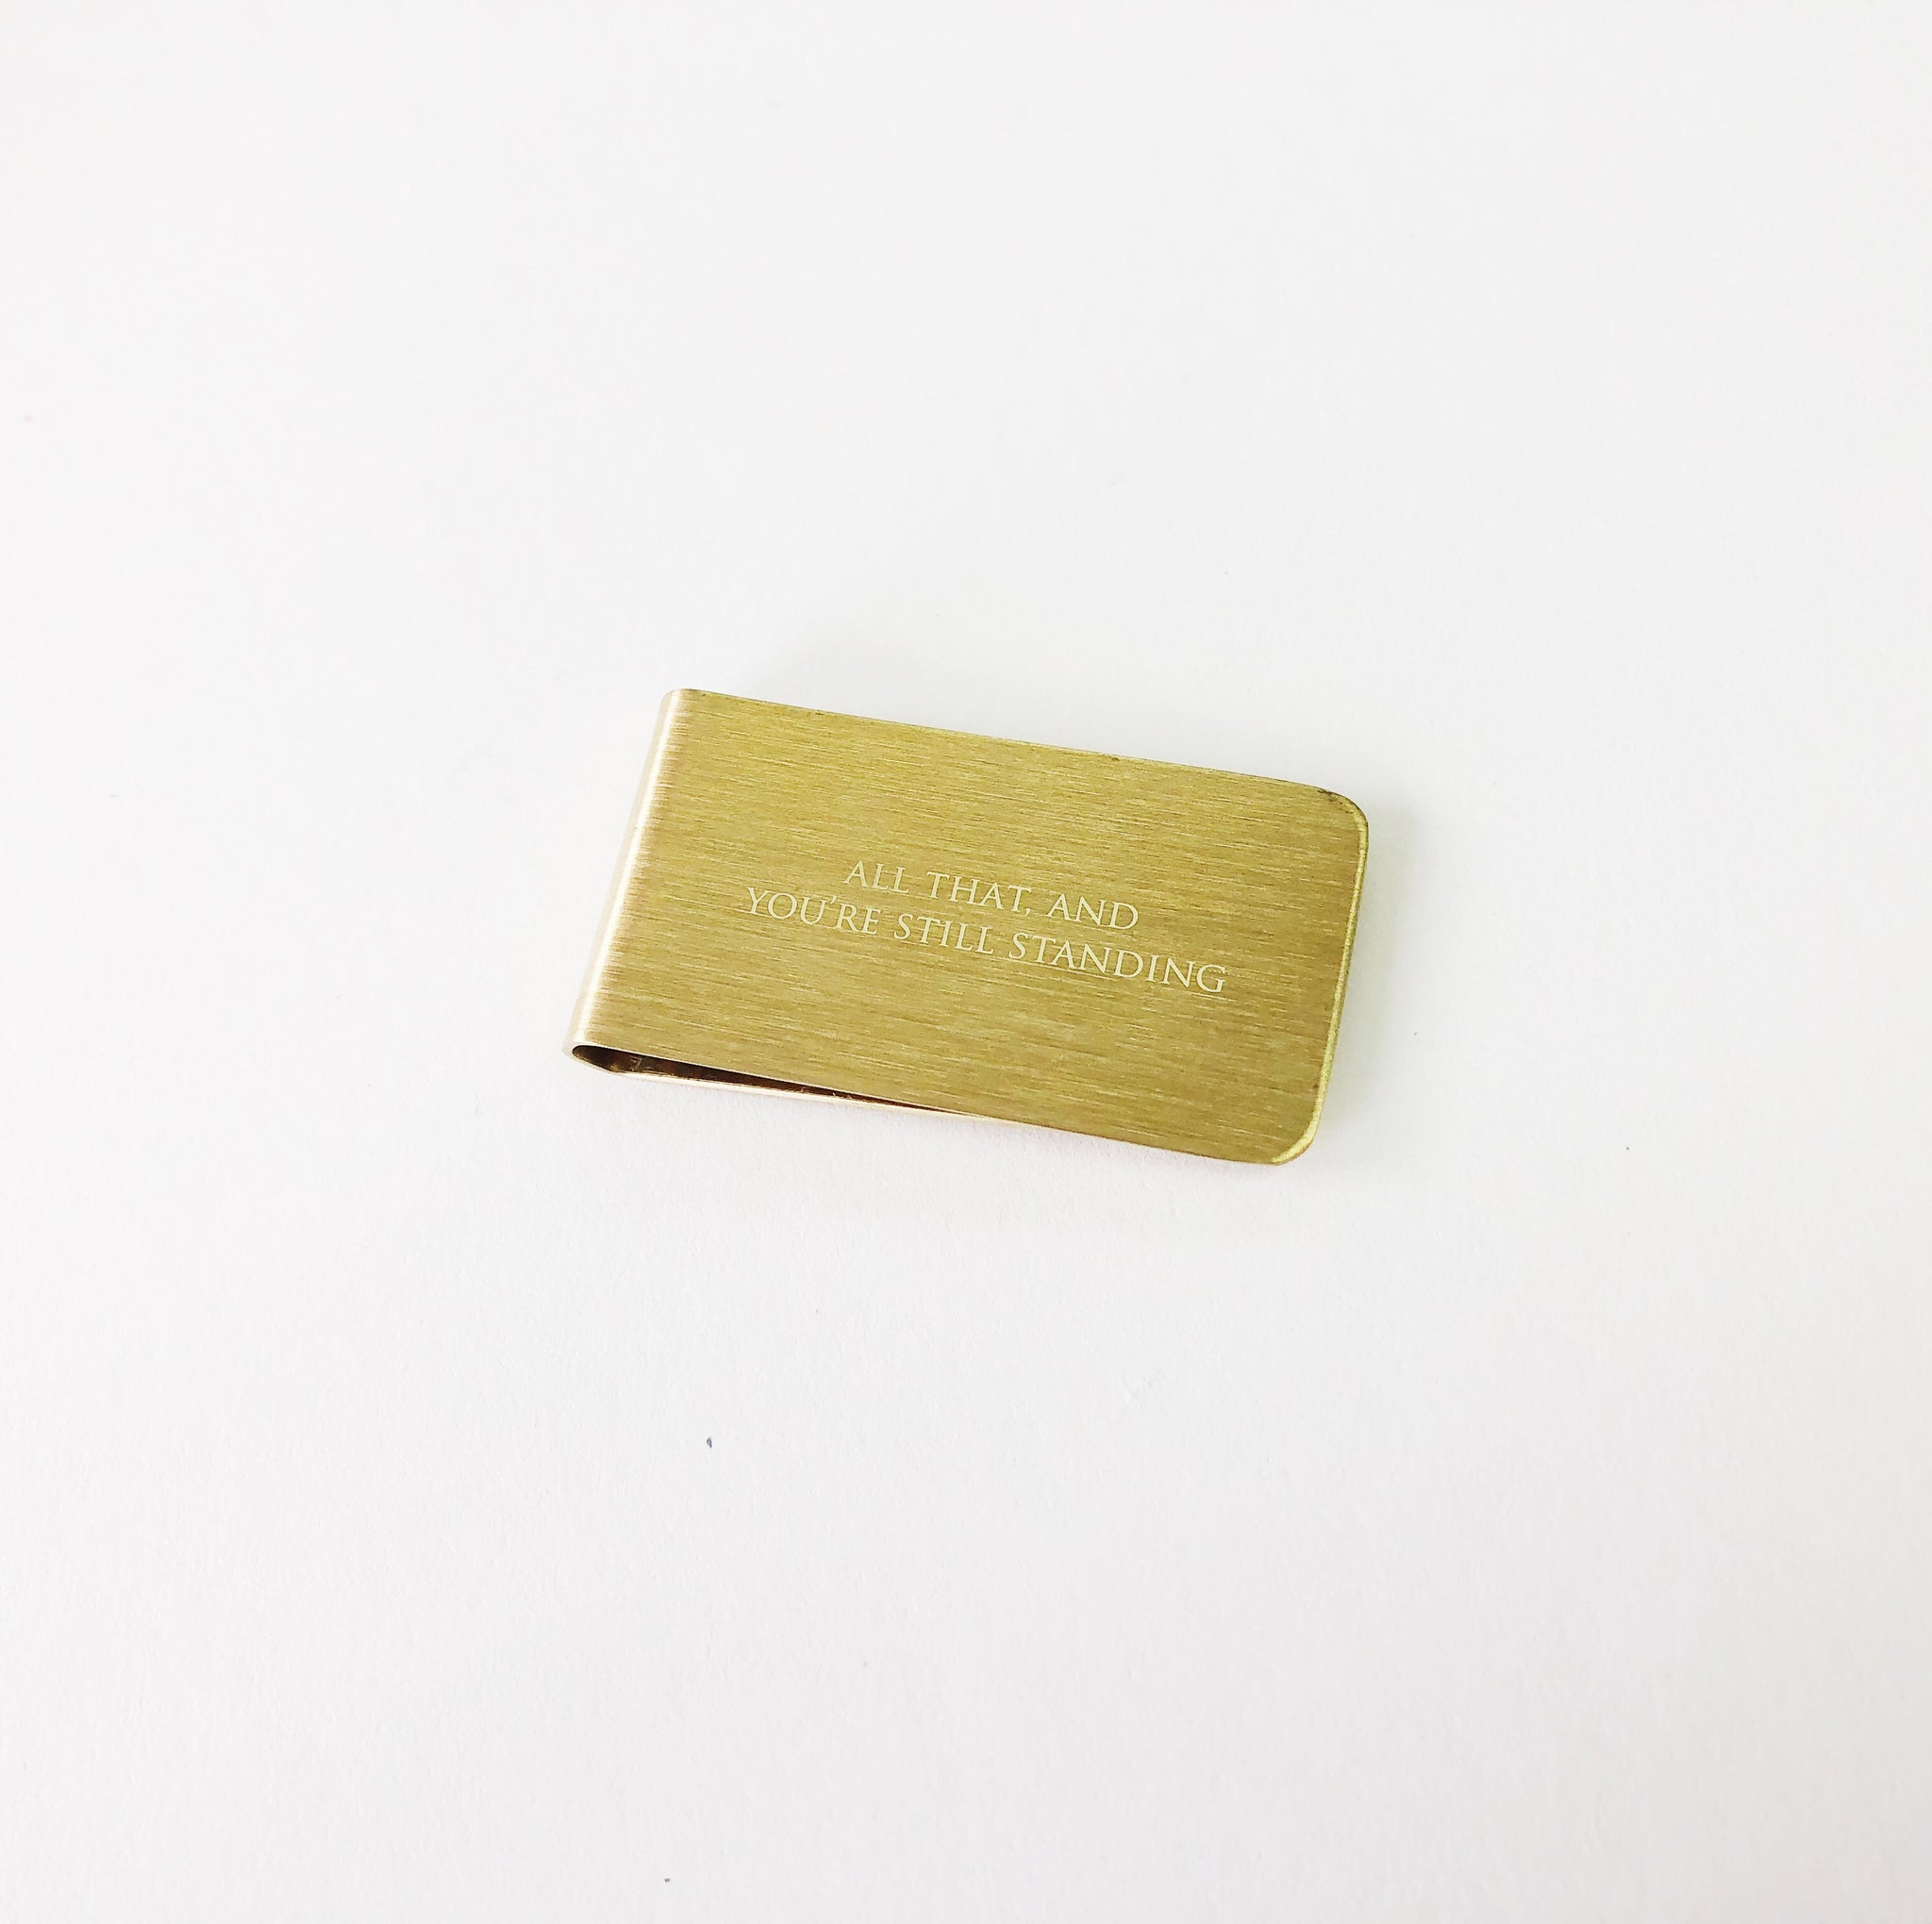 Money Clip - All that, and you're still standing